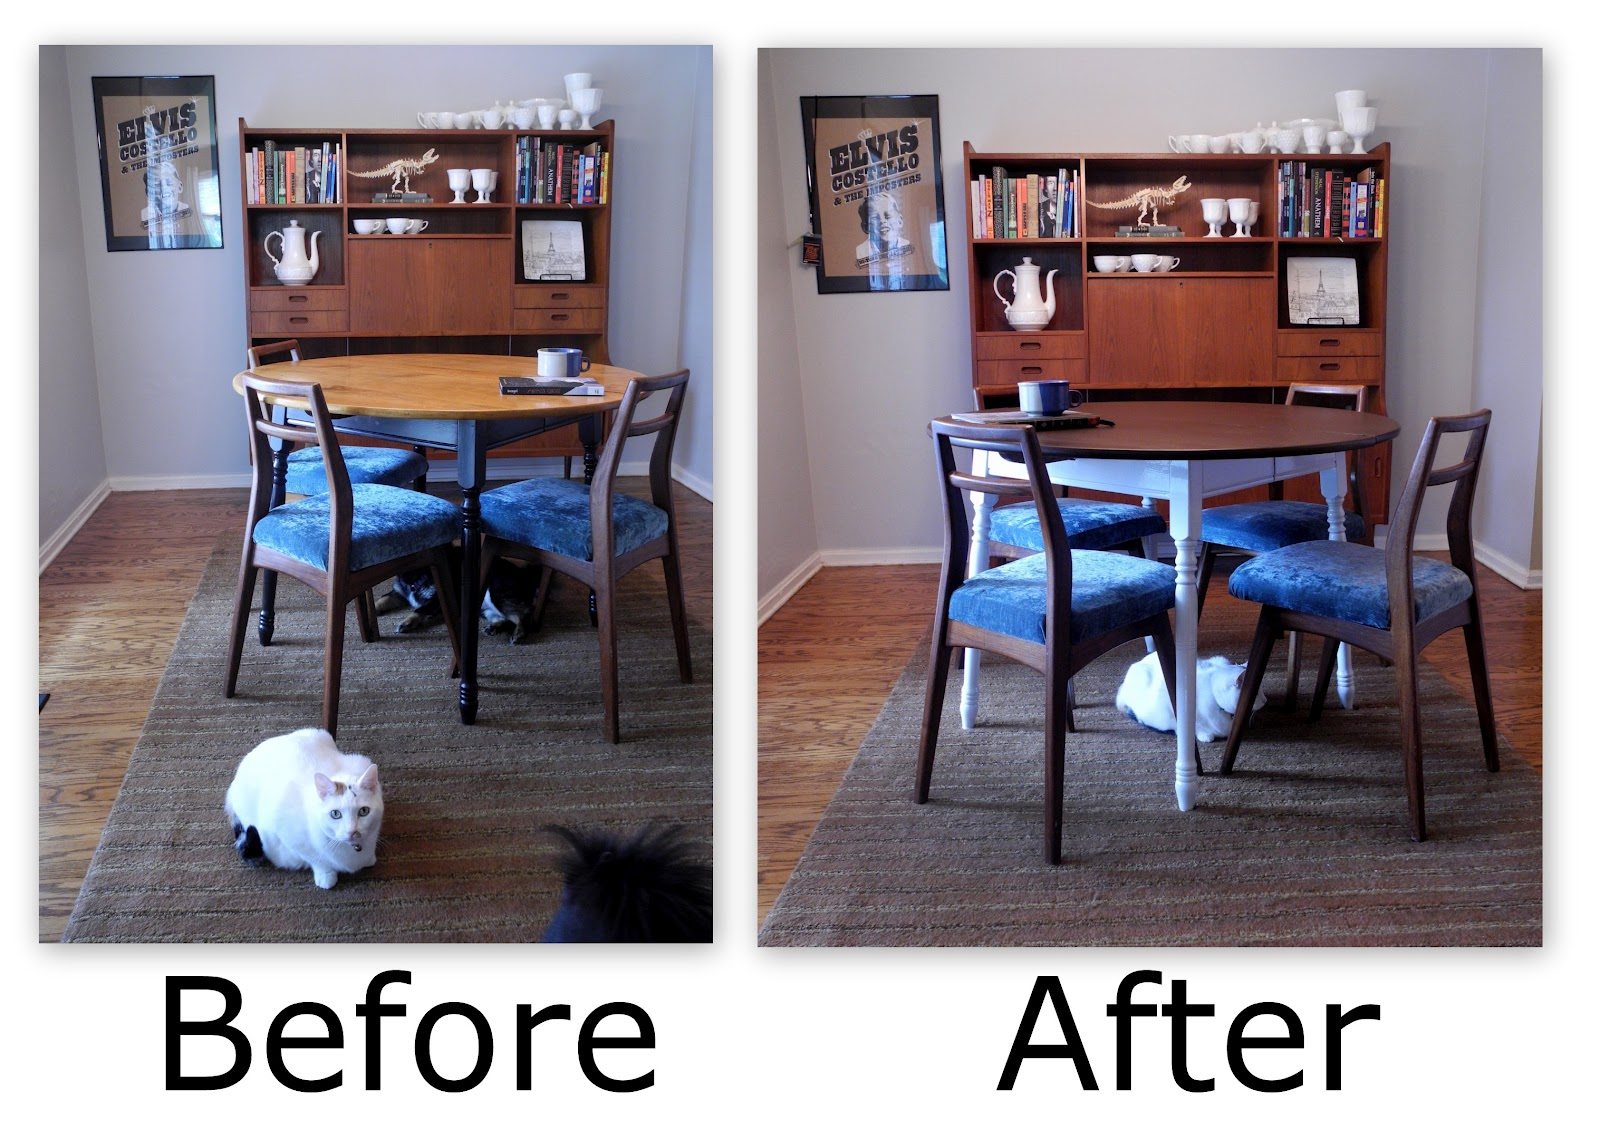 How to refinish stained wood furniture furniture design ideas - Refinishing a kitchen table ...